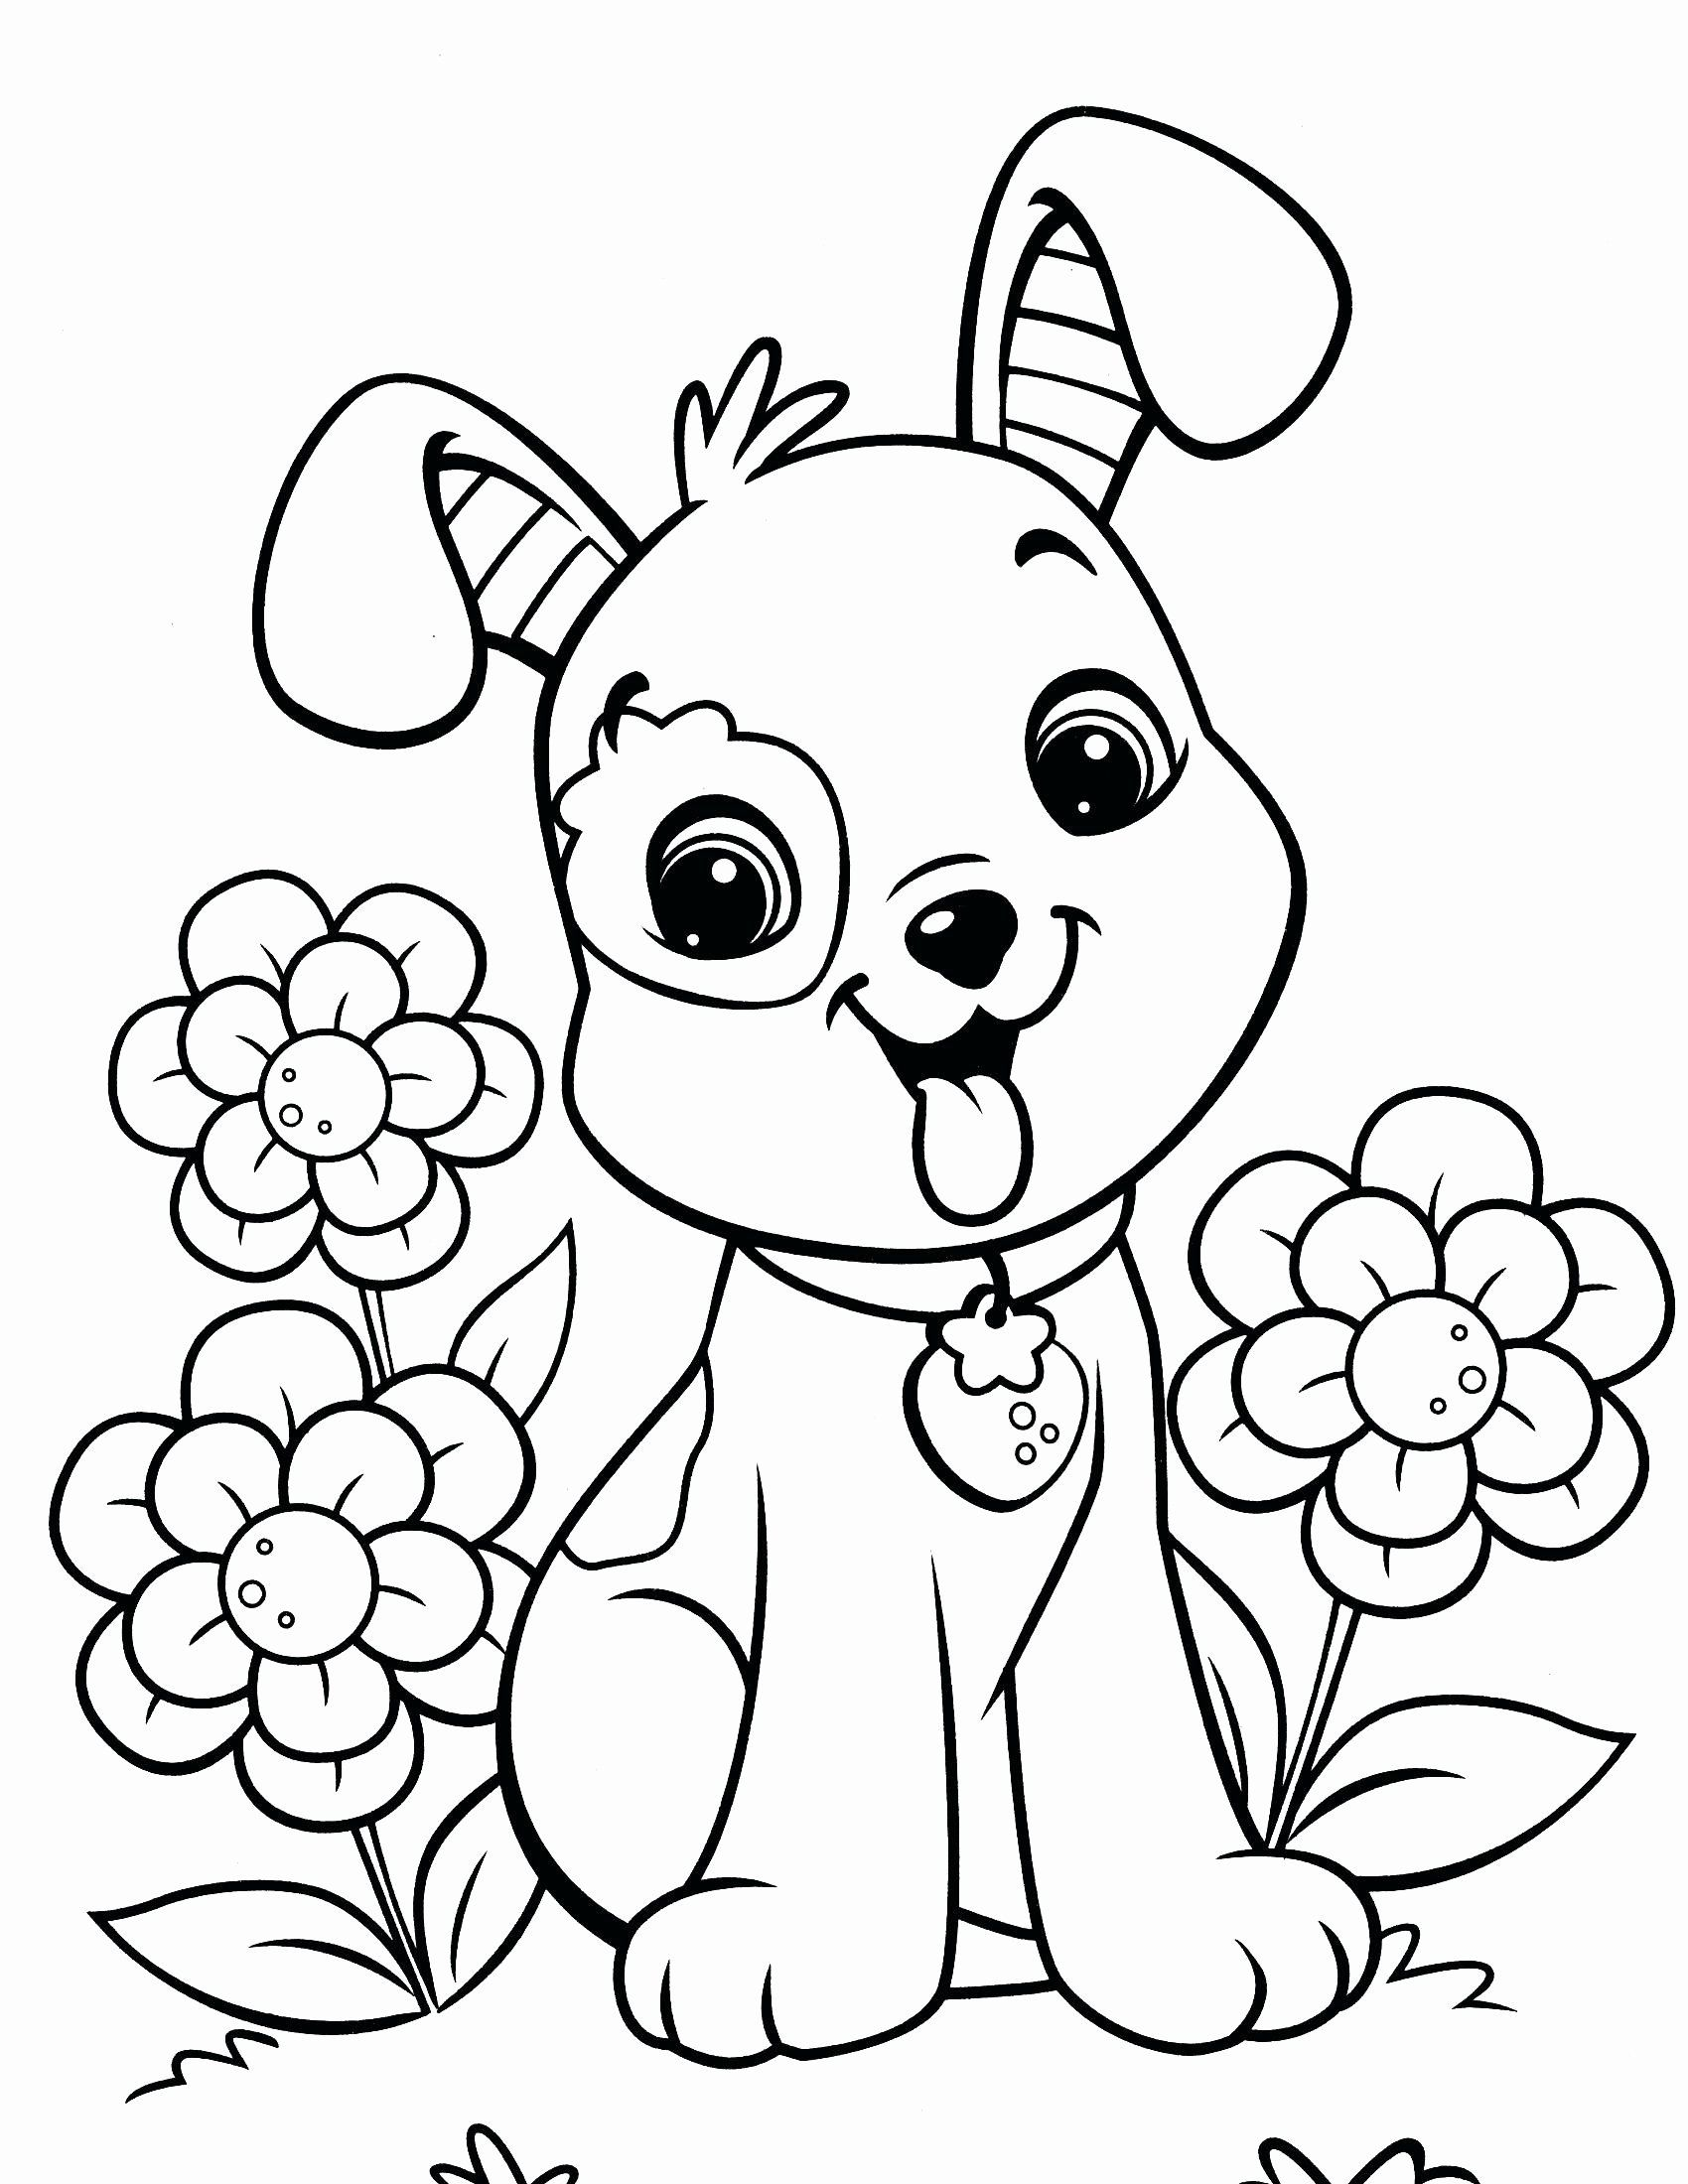 Free Coloring Pictures Com New Coloring Pages Coloring Book Printable For Adults Easy Dog Puppy Coloring Pages Valentine Coloring Pages Cool Coloring Pages